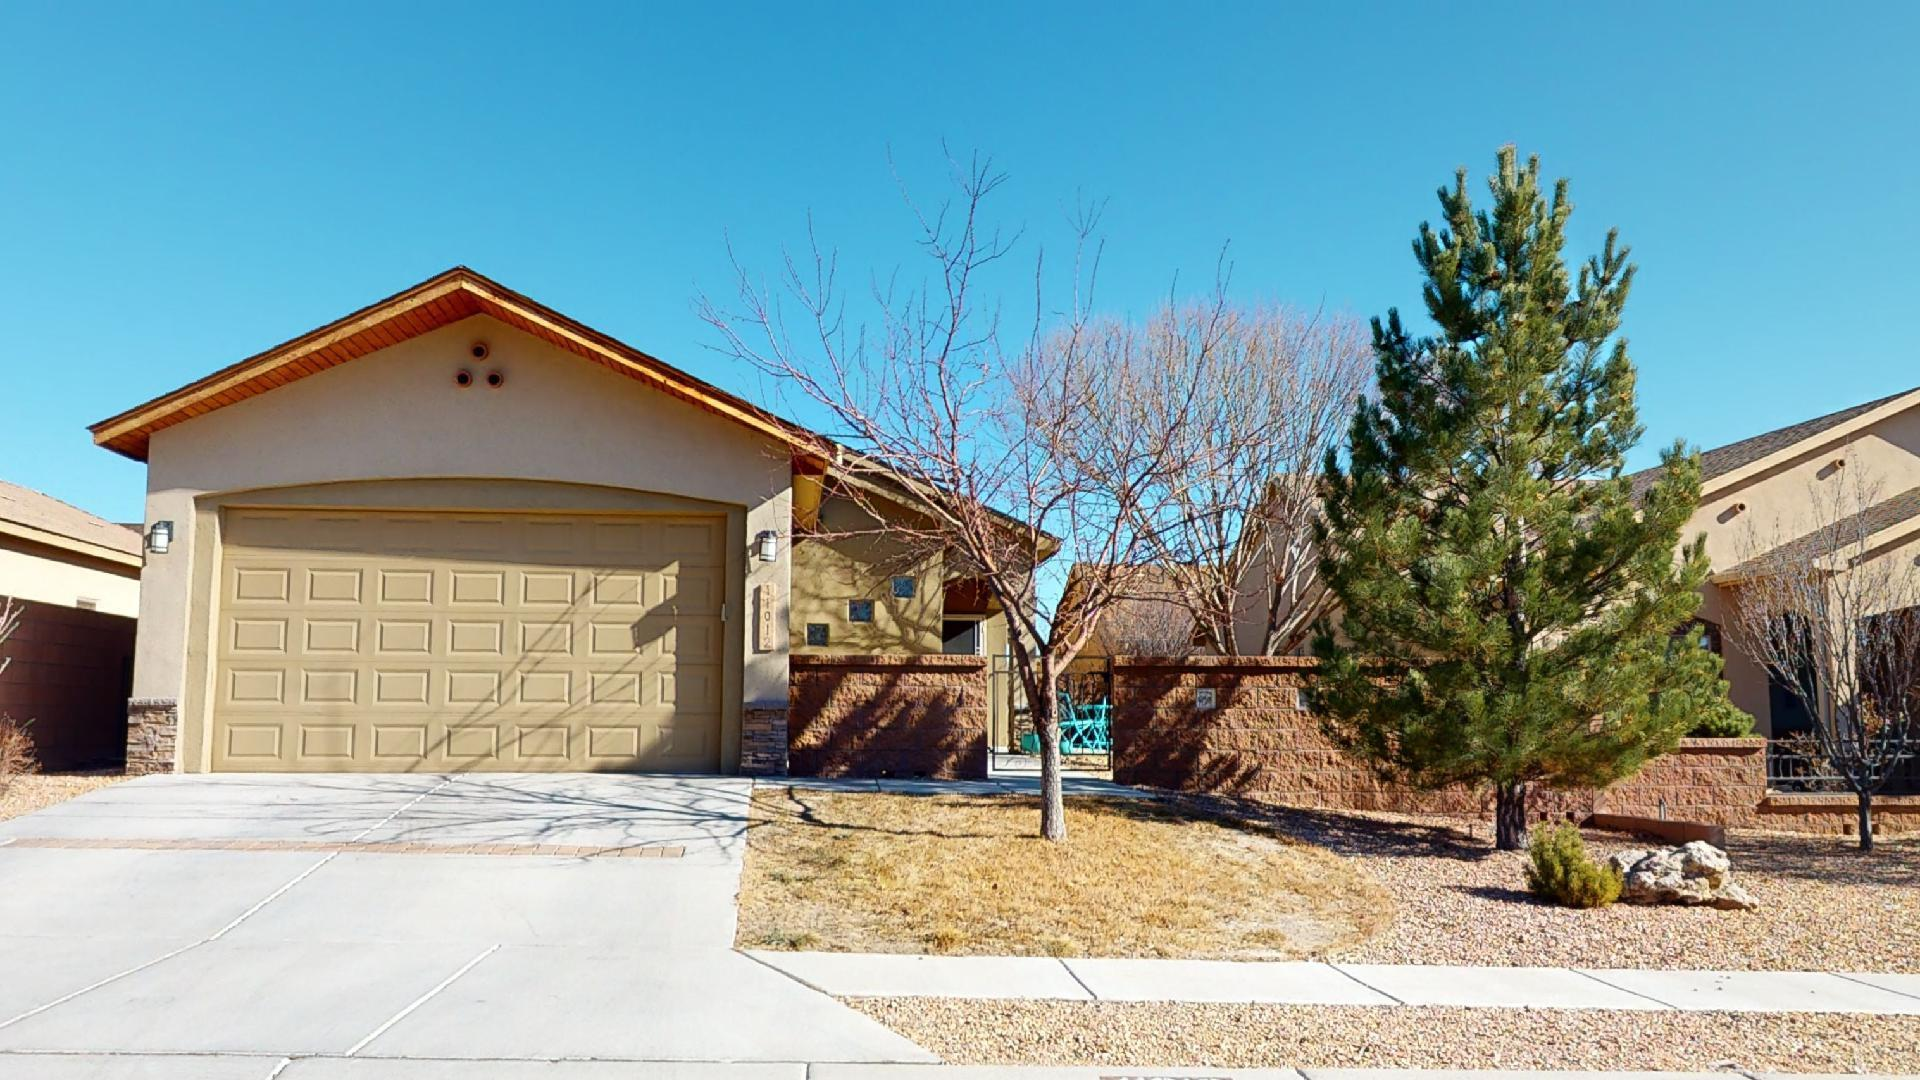 No showings until Saturday 1/23/21. Beautiful, fully-landscaped, energy efficient Paul Allen home, near all the amenities of westside ABQ. This is a Build Green New Mexico Gold home. 3 Bedroom, 2 Full baths. Refrigerated air. Tankless water heater. 2 car garage. This is a well-cared for home, with upgrades, fresh paint, a back patio with lots of privacy, drip system watering, and secure courtyard. Enjoy a lovely night on the back patio in the shade of this west-facing house.  2k Seller flooring credit with acceptable offer.